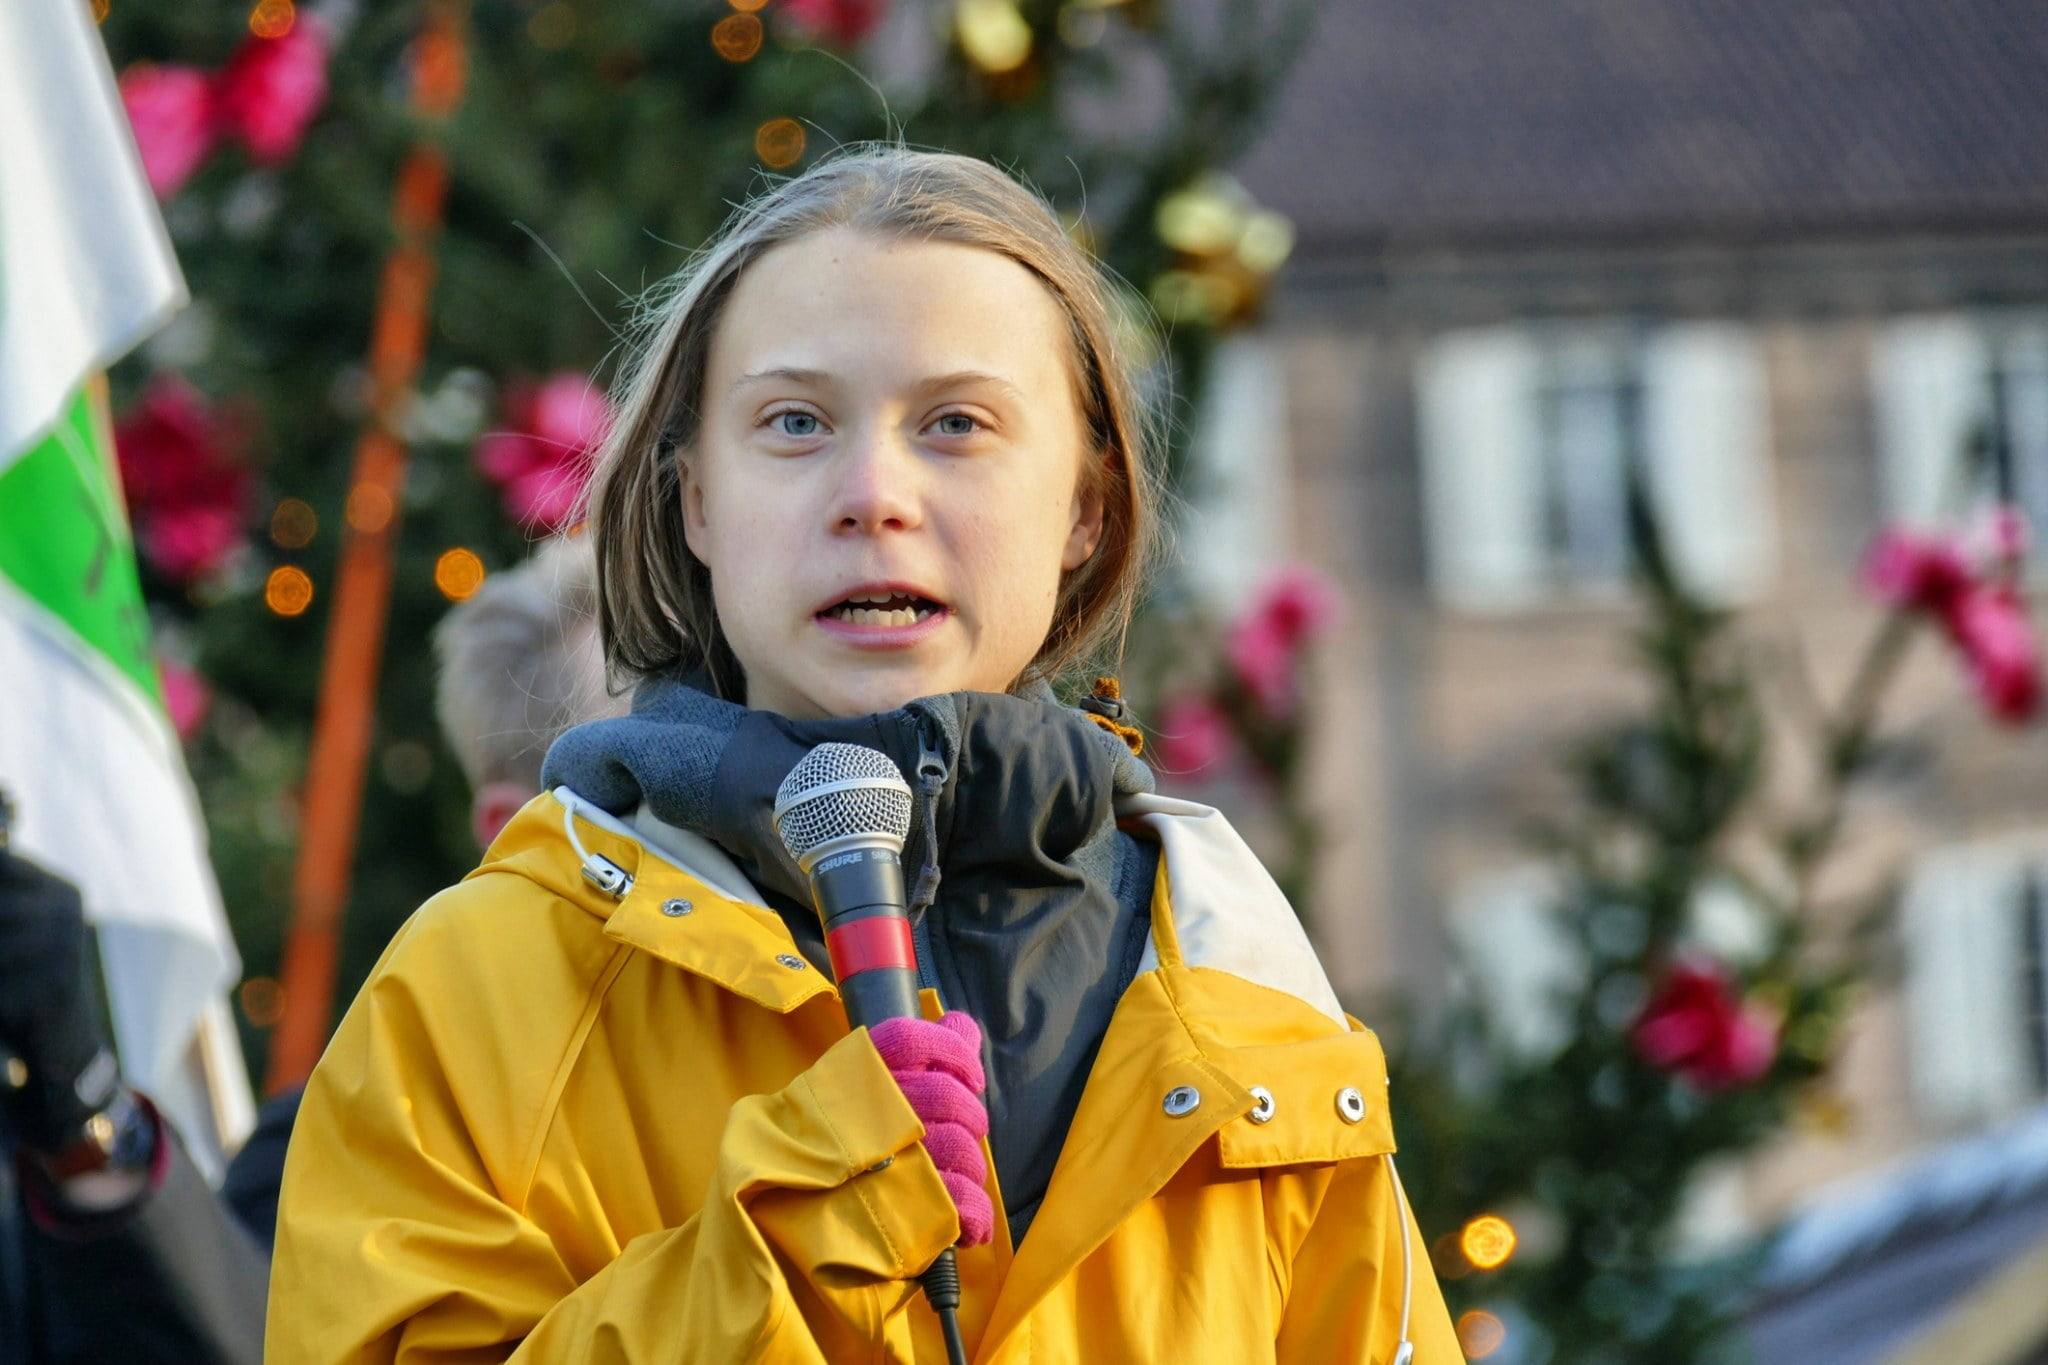 Mideast Expert Greta Thunberg to Host CNN Special on Israeli-Palestinian Conflict